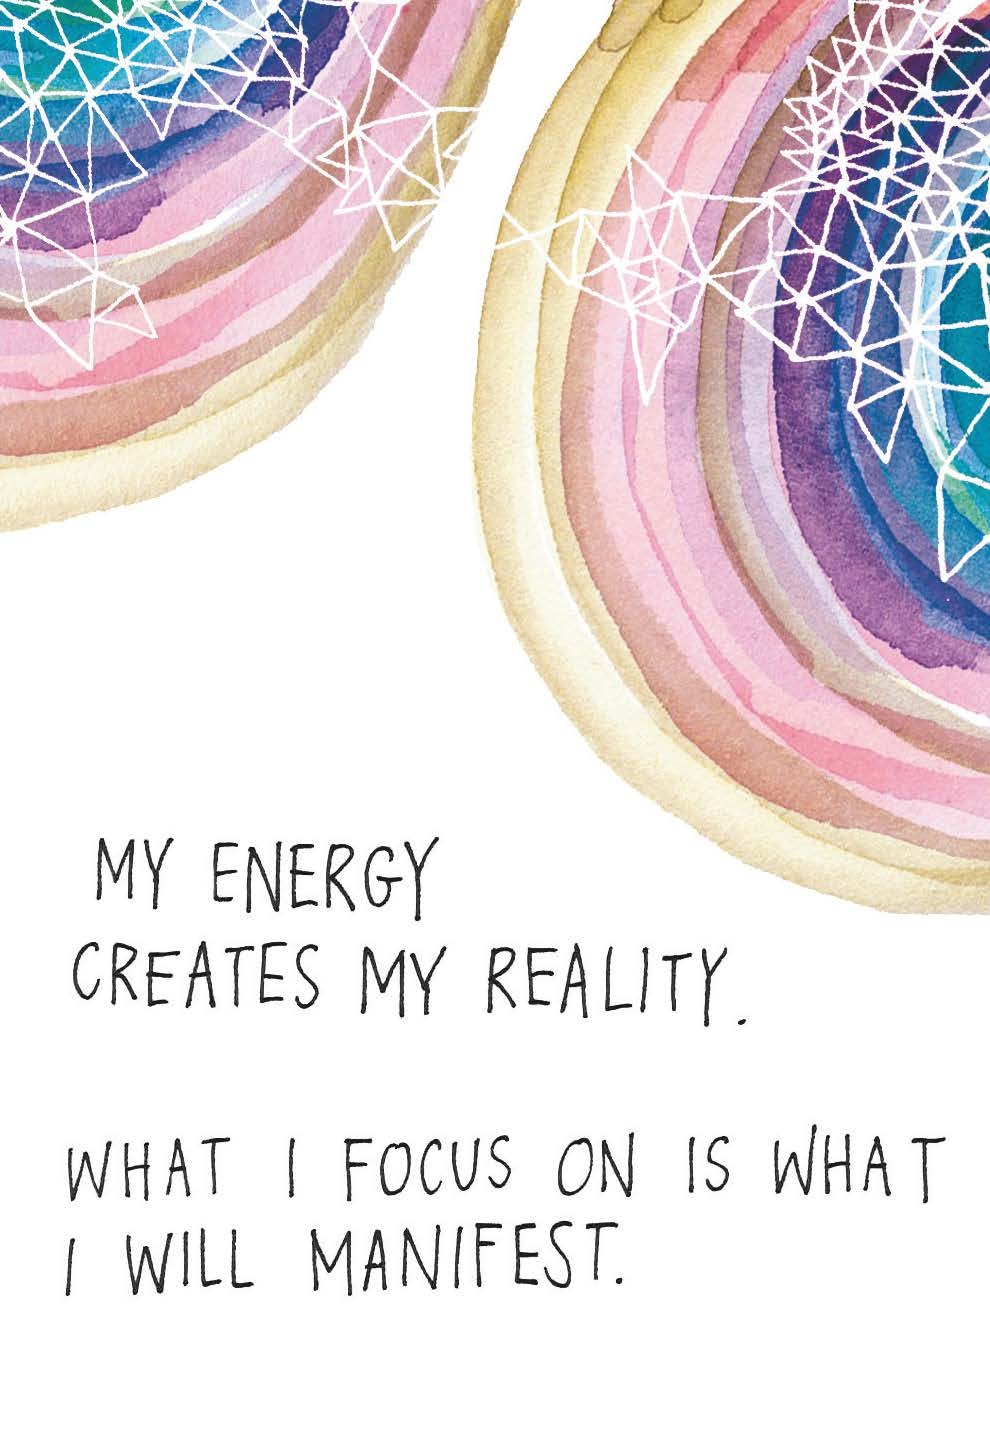 My energy creates my reality. What I focus on is what I will manifest. | Gabby Bernstein | The Universe Has Your Back card deck